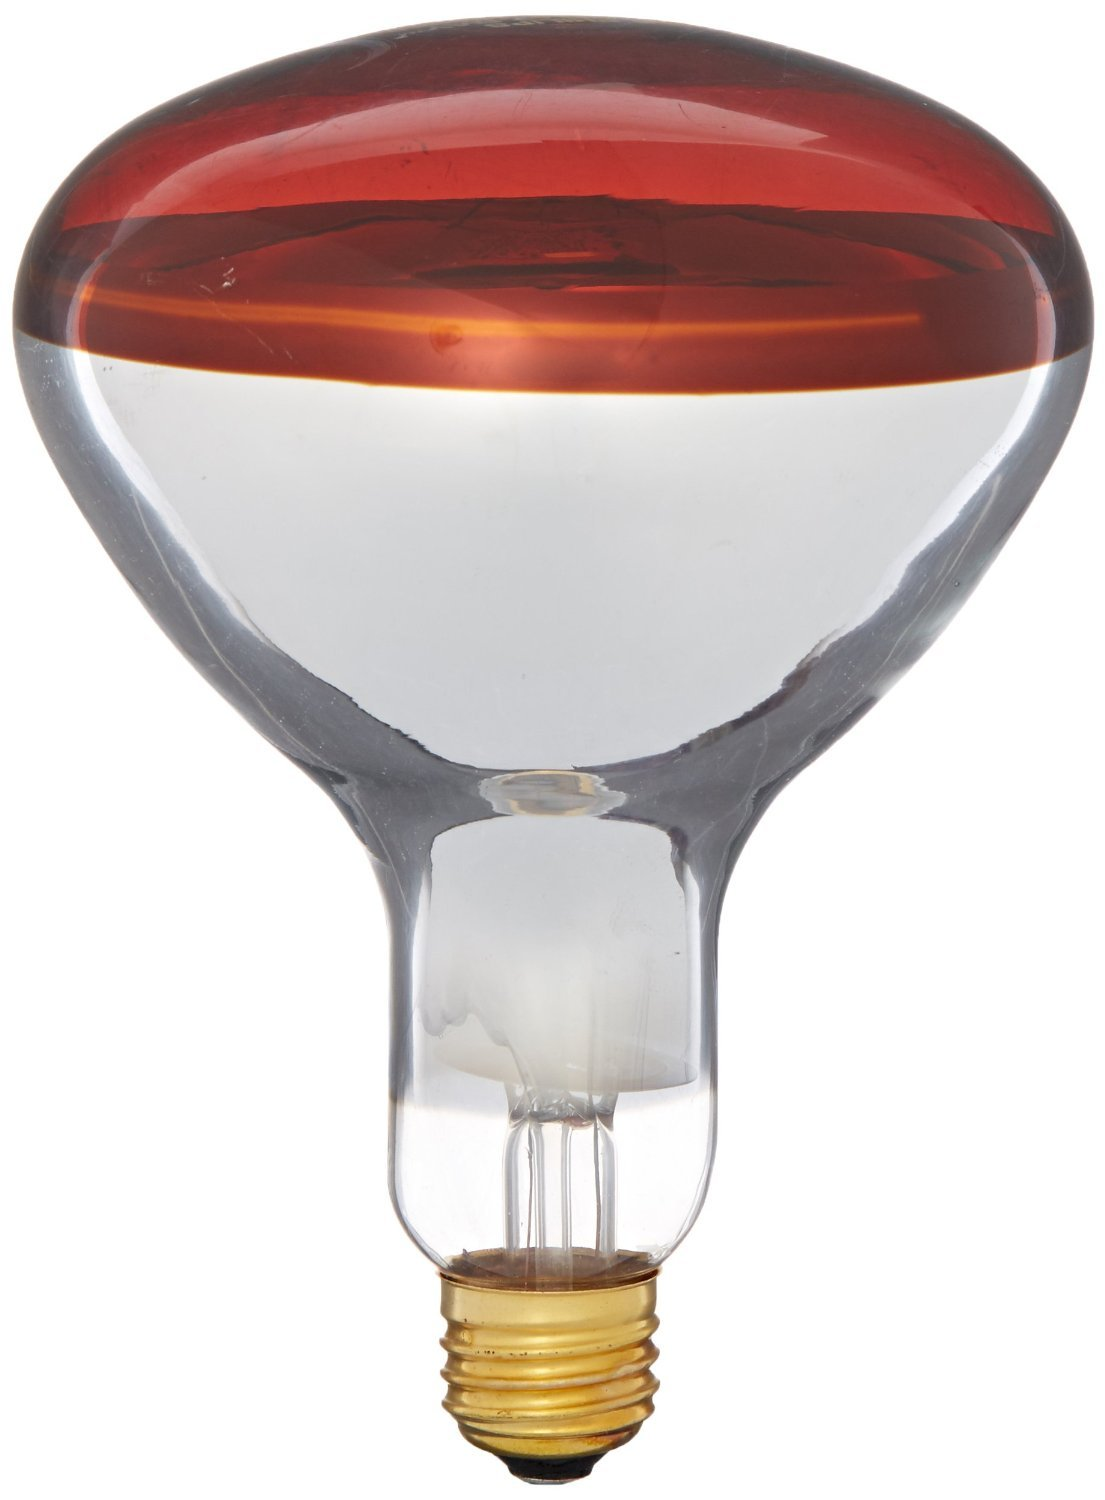 Philips 415836 Heat Lamp 250 Watt R40 Flood Light Bulb   Led Household Light  Bulbs   Amazon.com